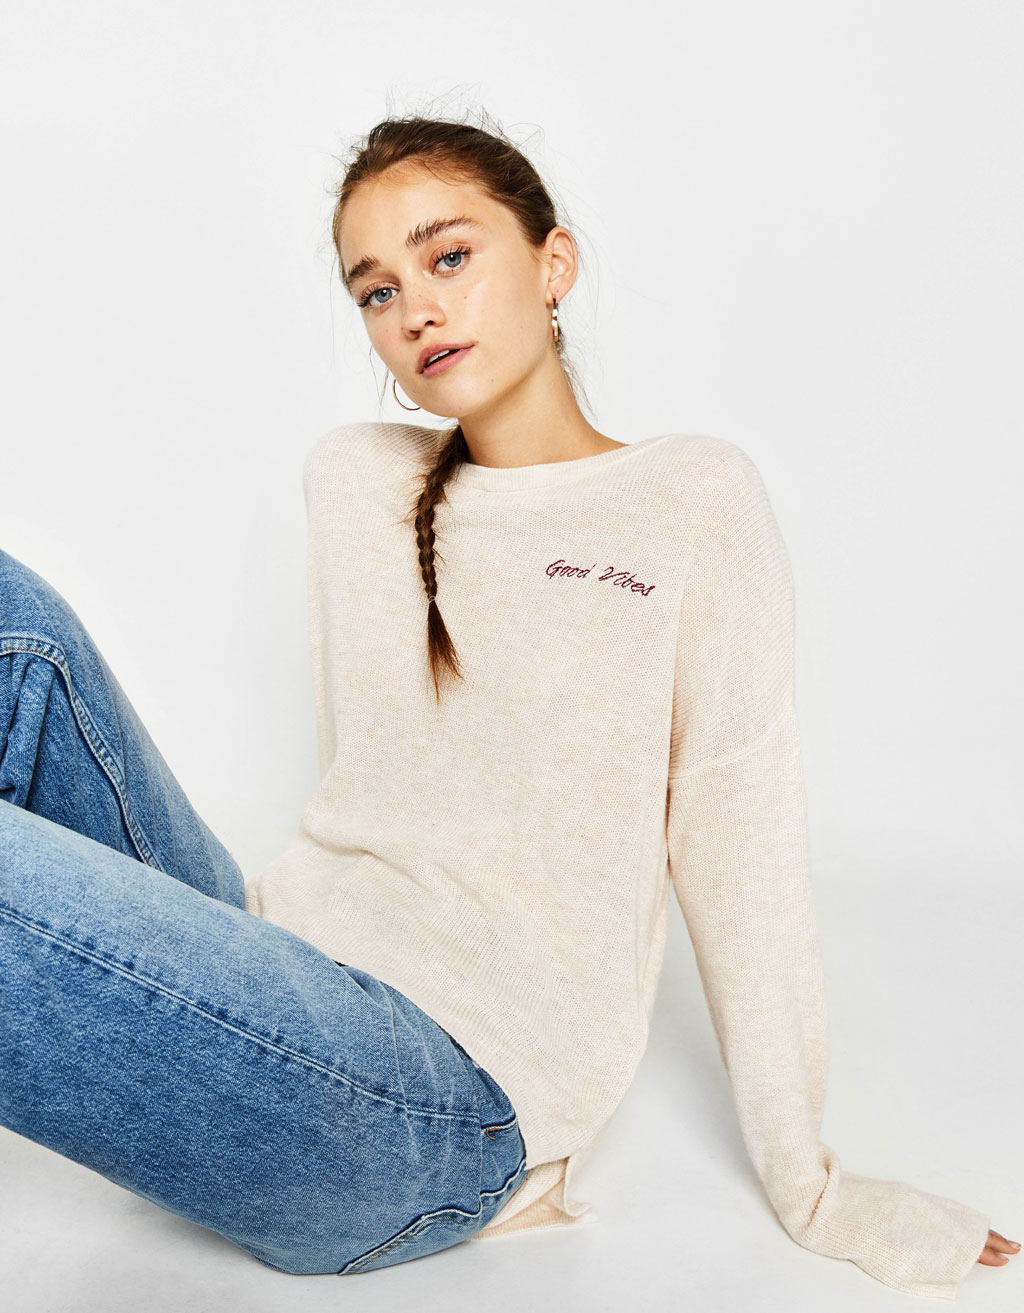 Sweater with embroidered slogan